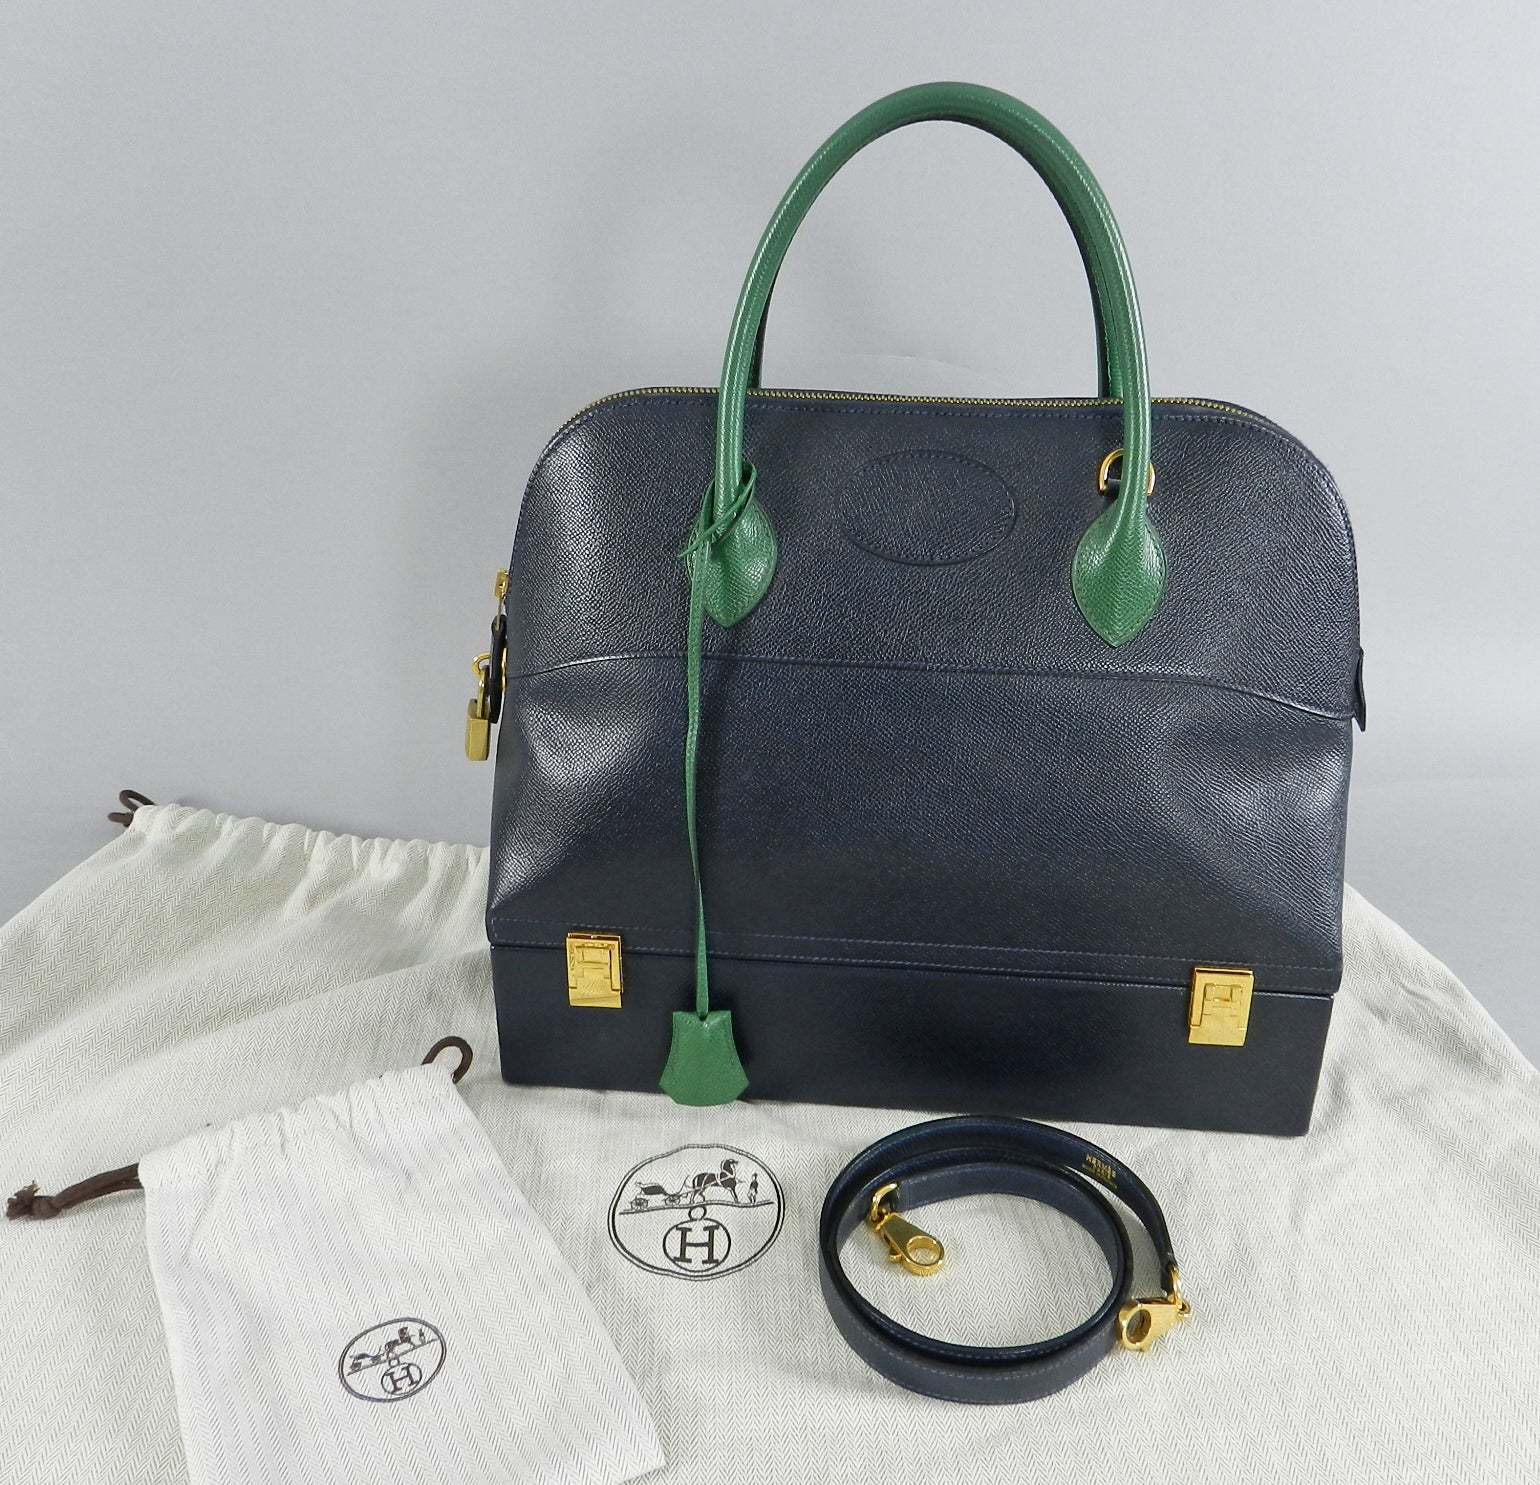 d8f560b9f8 ... bidding starts at 11020 via ebay b366b 9174c  amazon hermes vintage  bolide macpherson 34 trunk bag bicolor green and navy at 1stdibs 83592 5823a